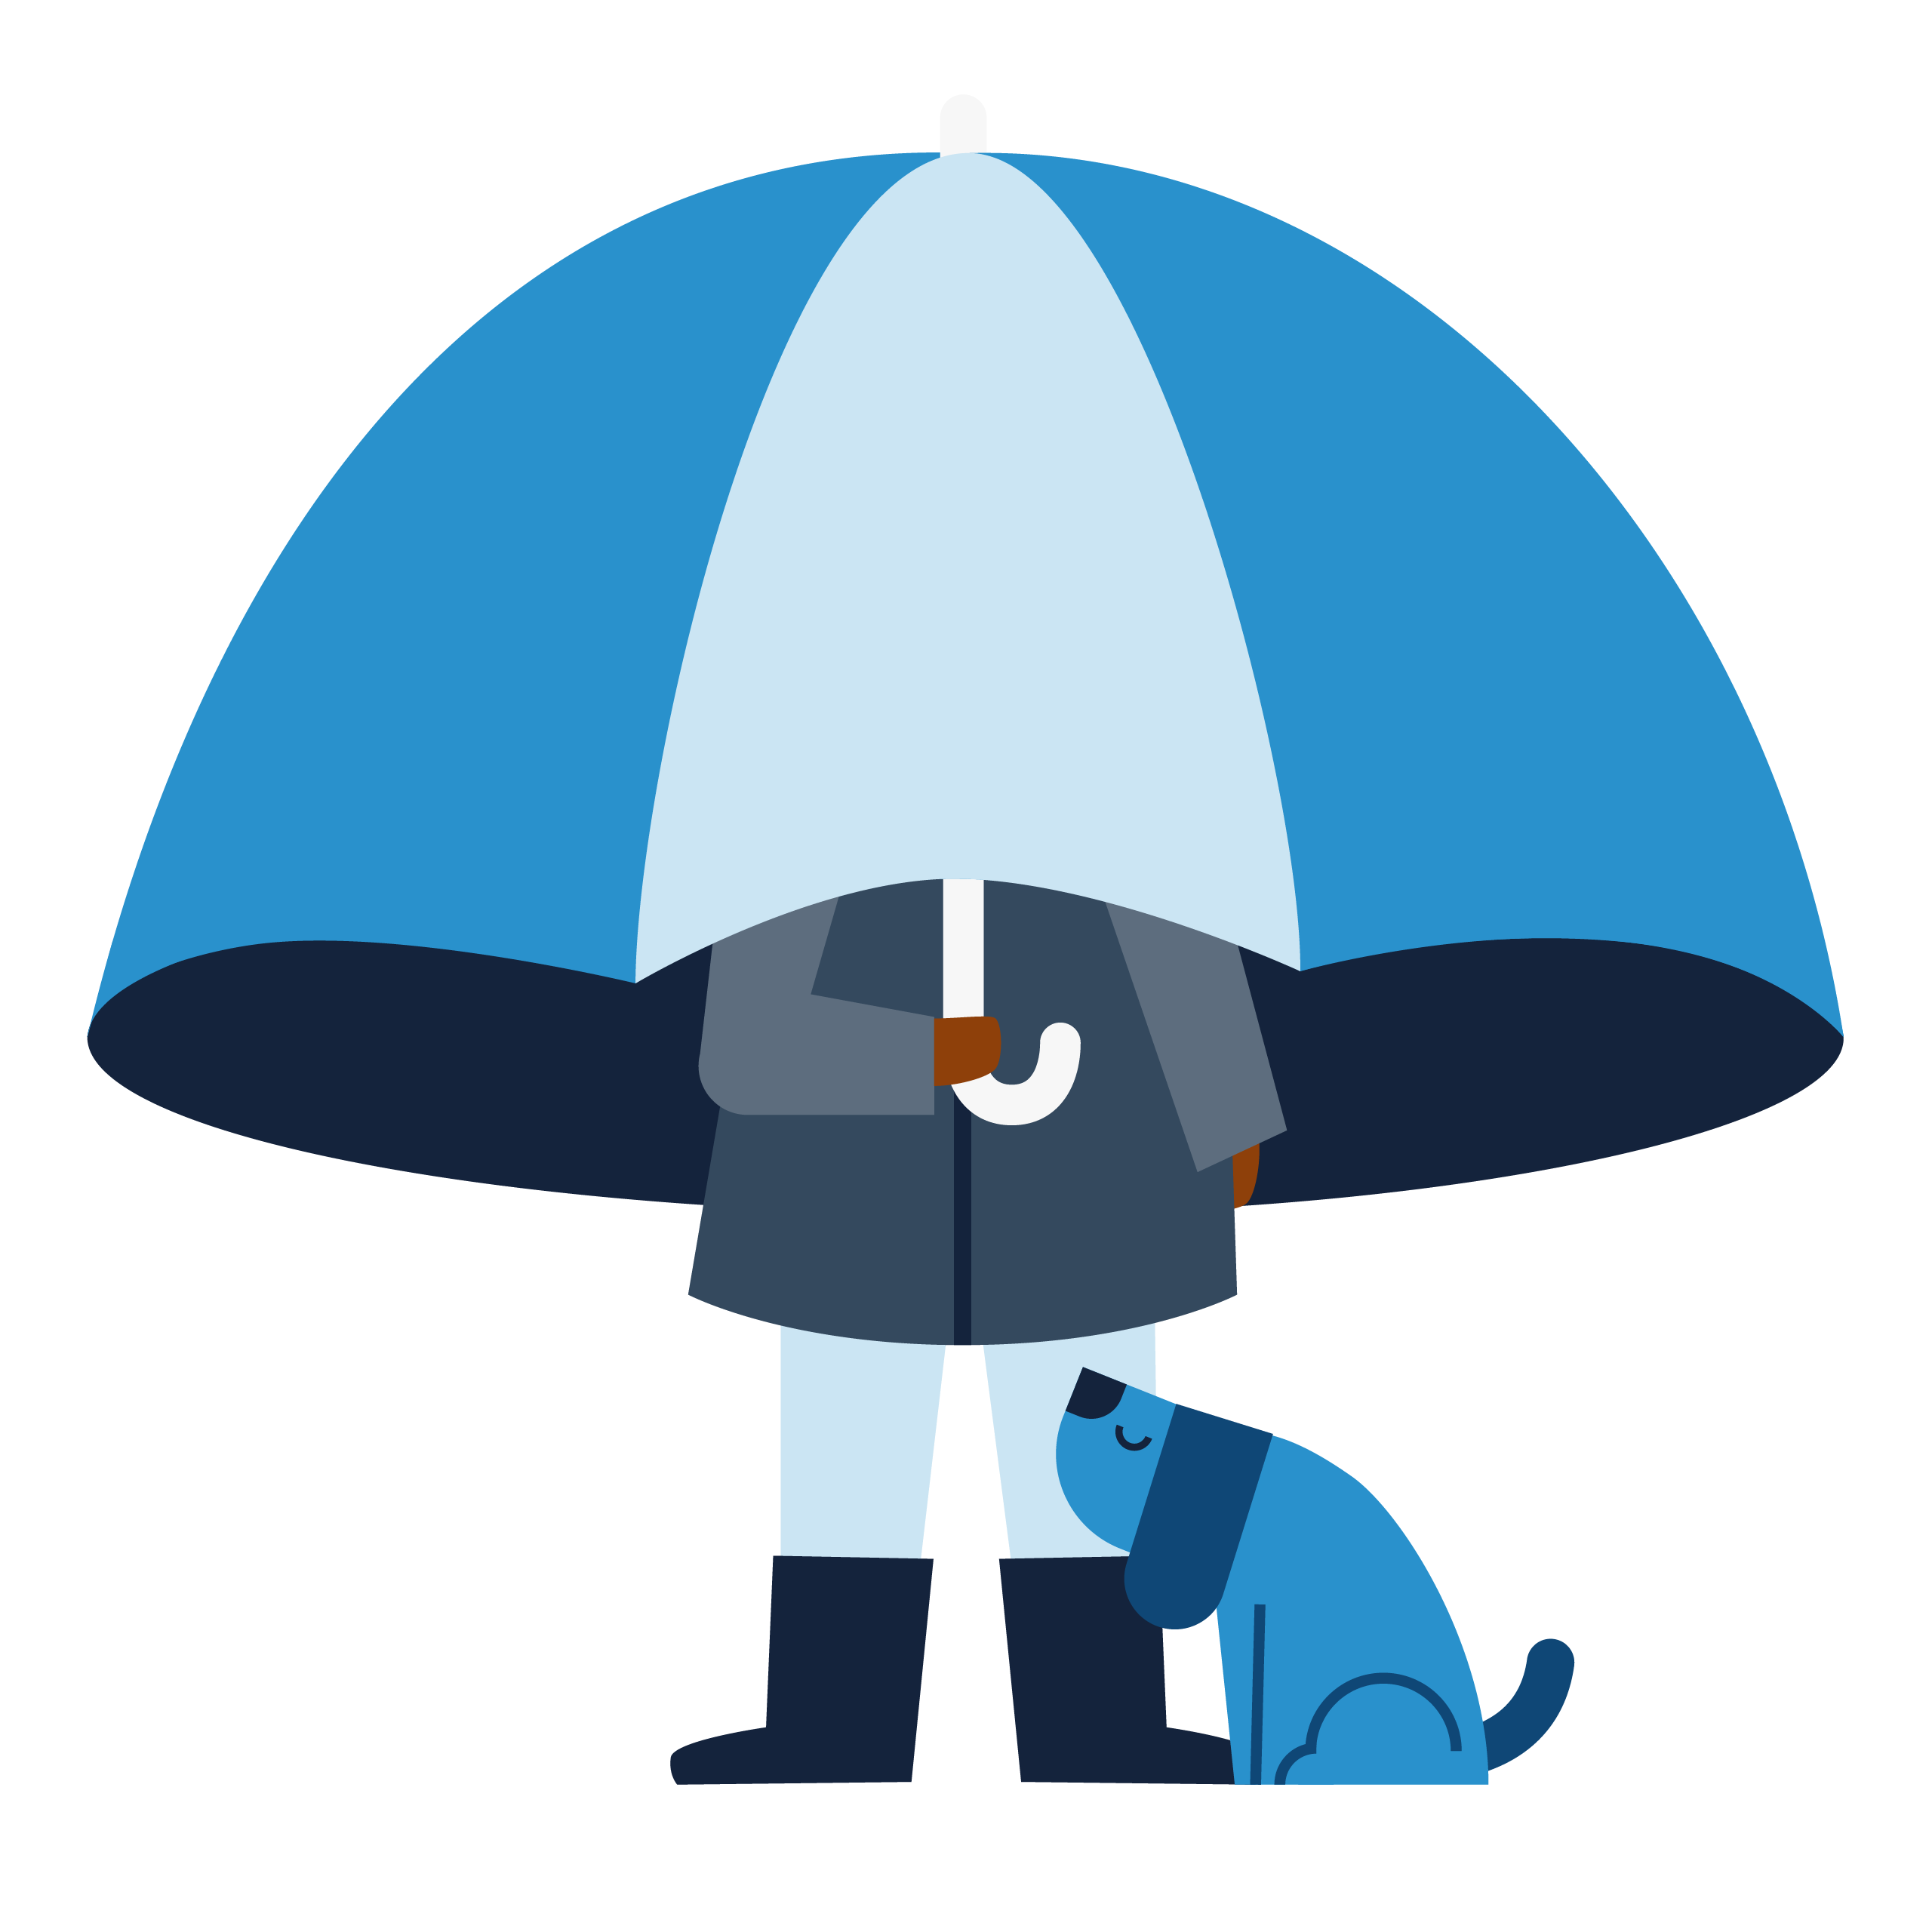 Person with an umbrella and a dog